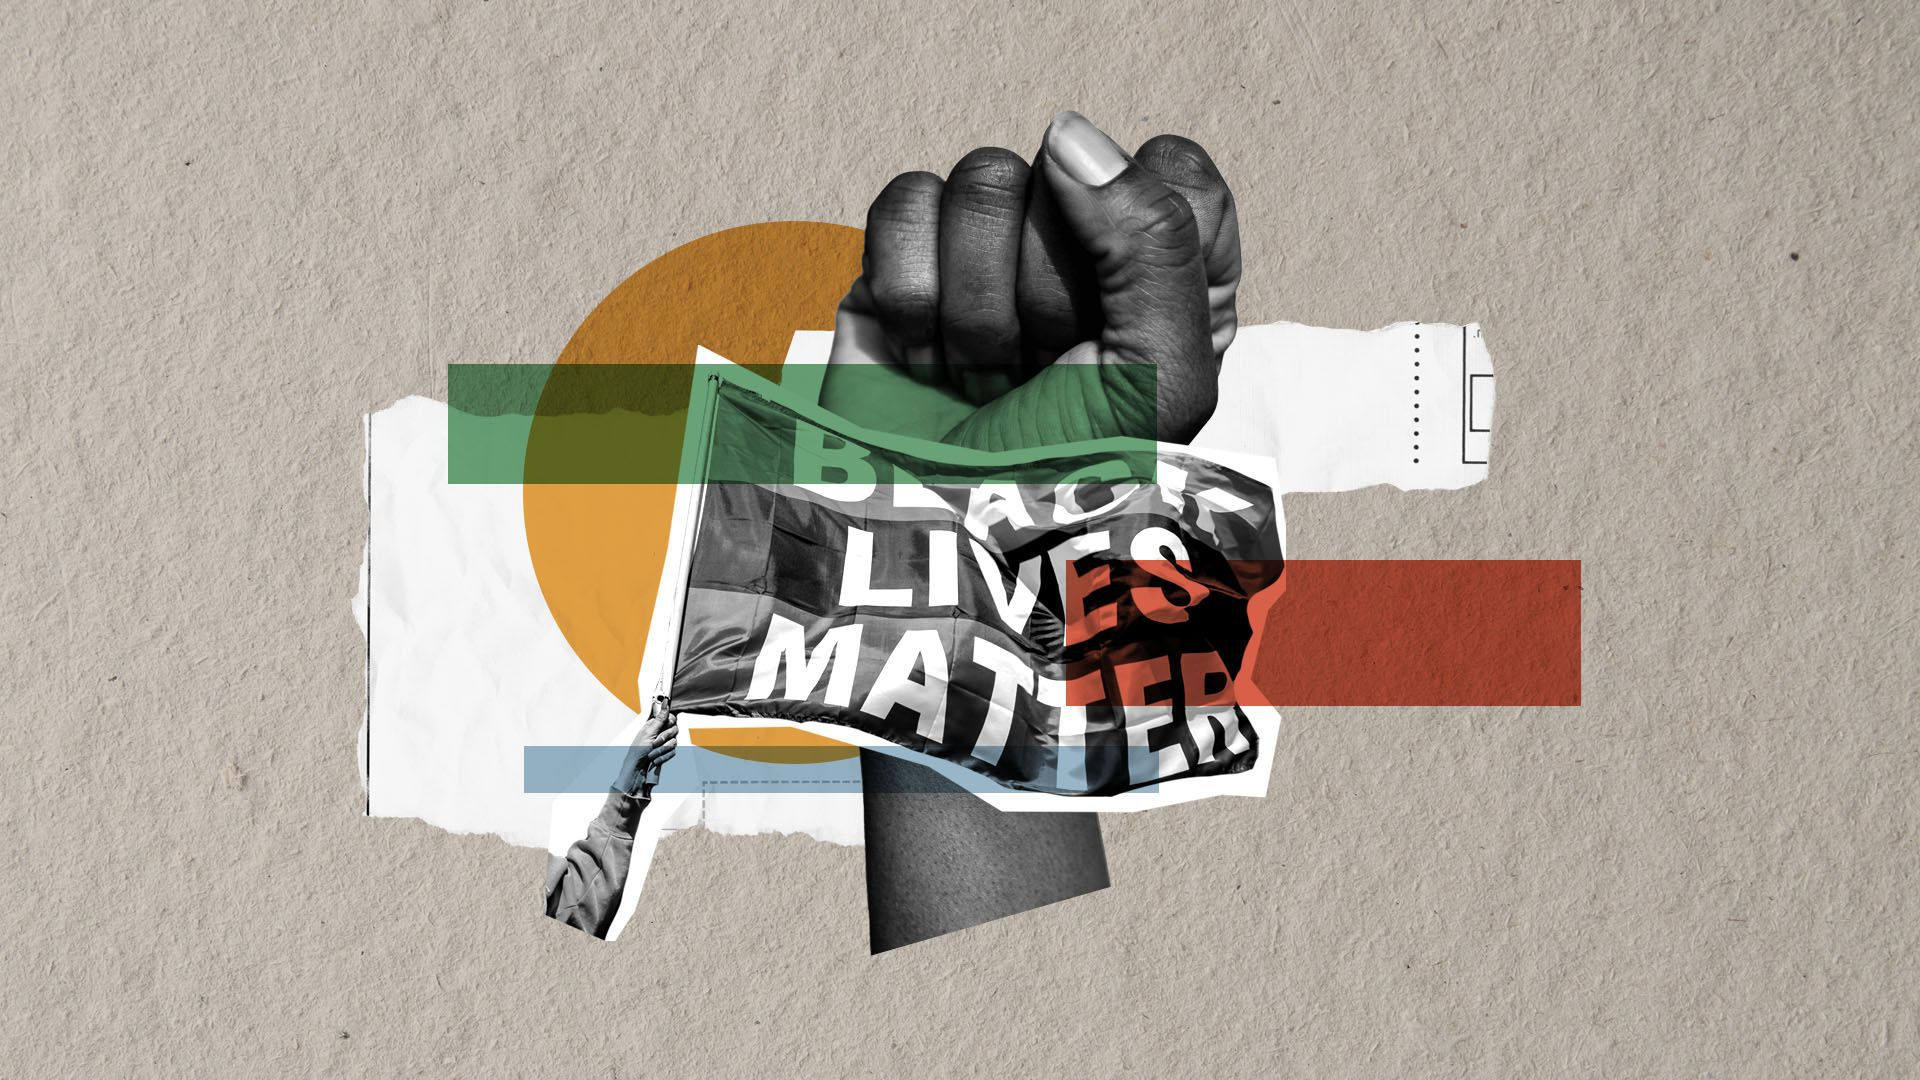 Illustrated collage of a fist in the air and a black lives matter flag